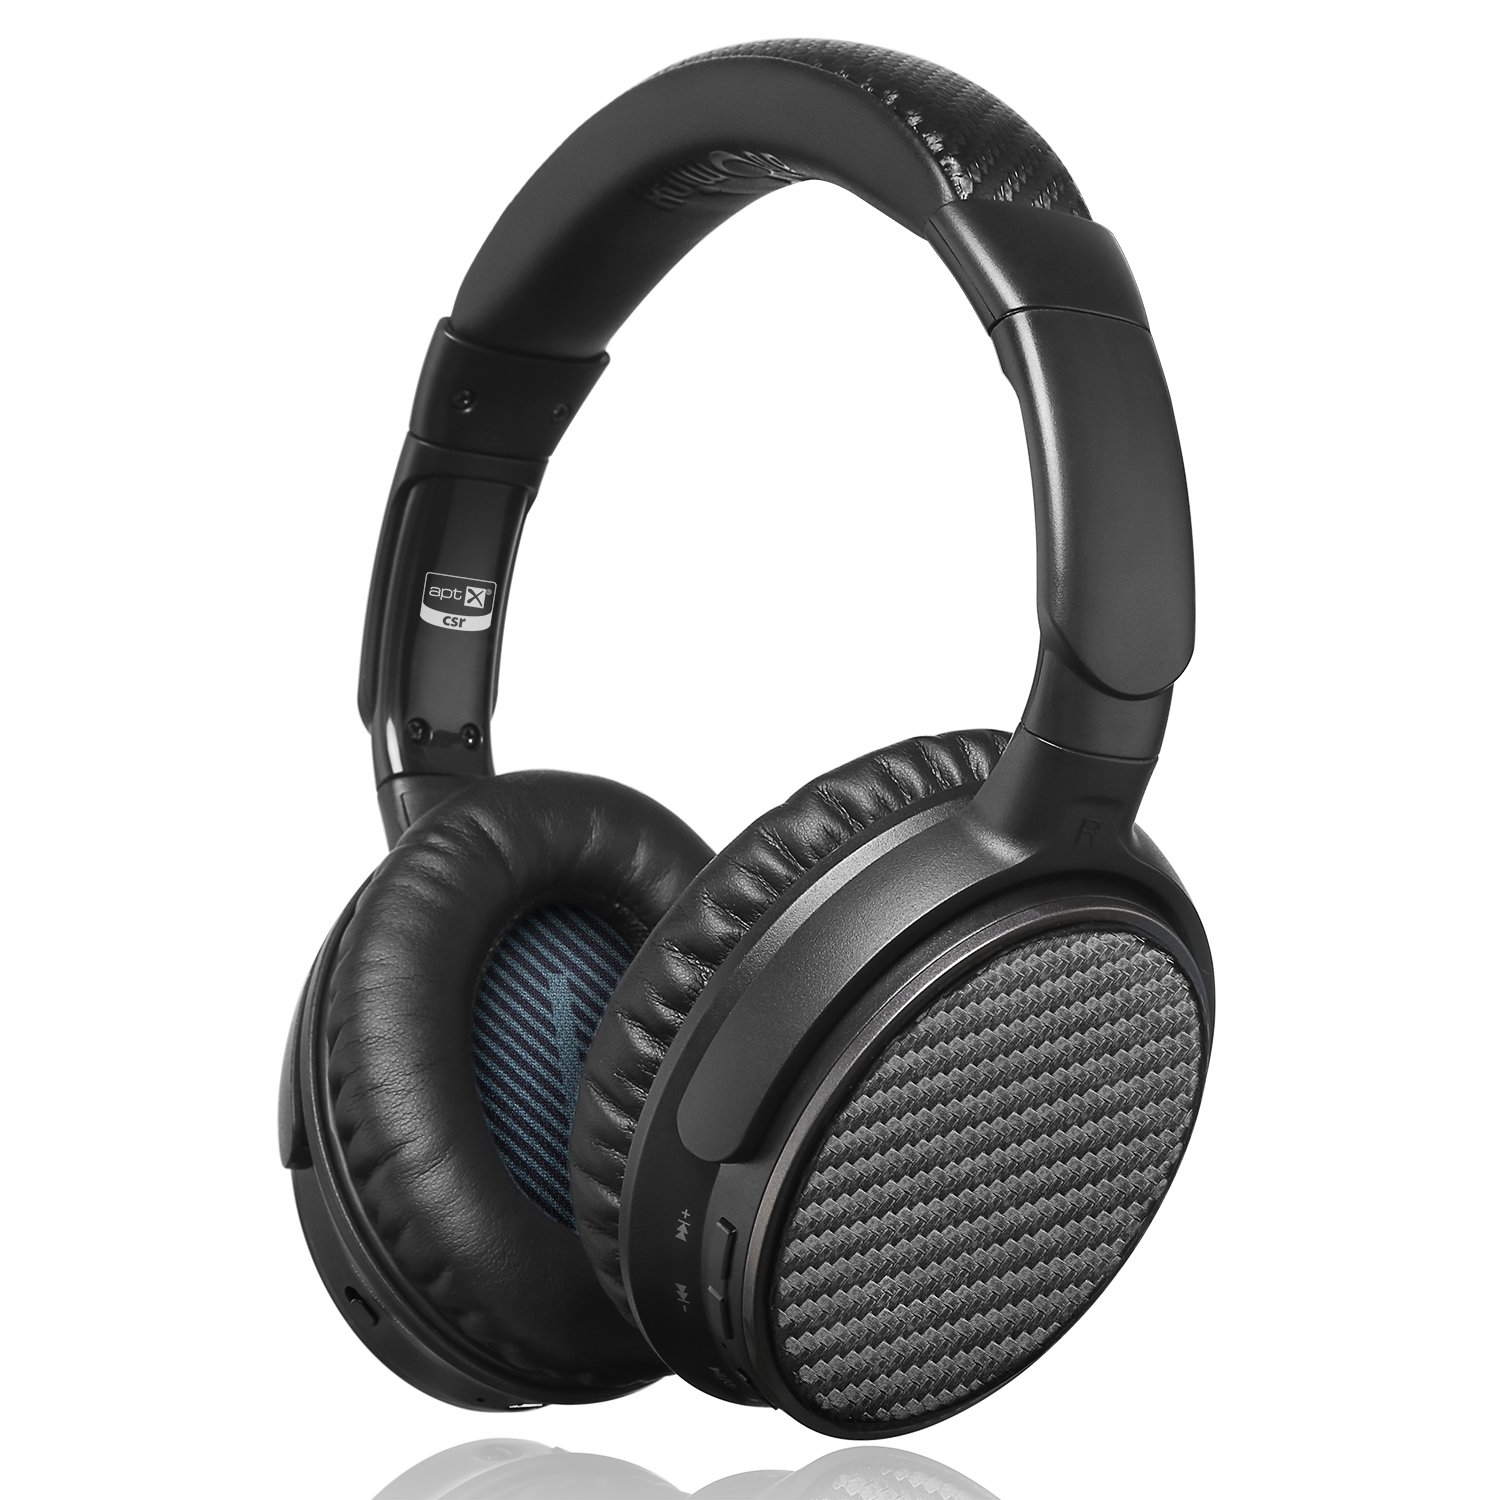 Active Noise Cancelling Bluetooth Headphones, iDeaUSA Wireless Over Ear Headphones with Microphone apt-X HiFi Stereo Sound Headphones for TV, Airplane, 25 Hours Playback - Black